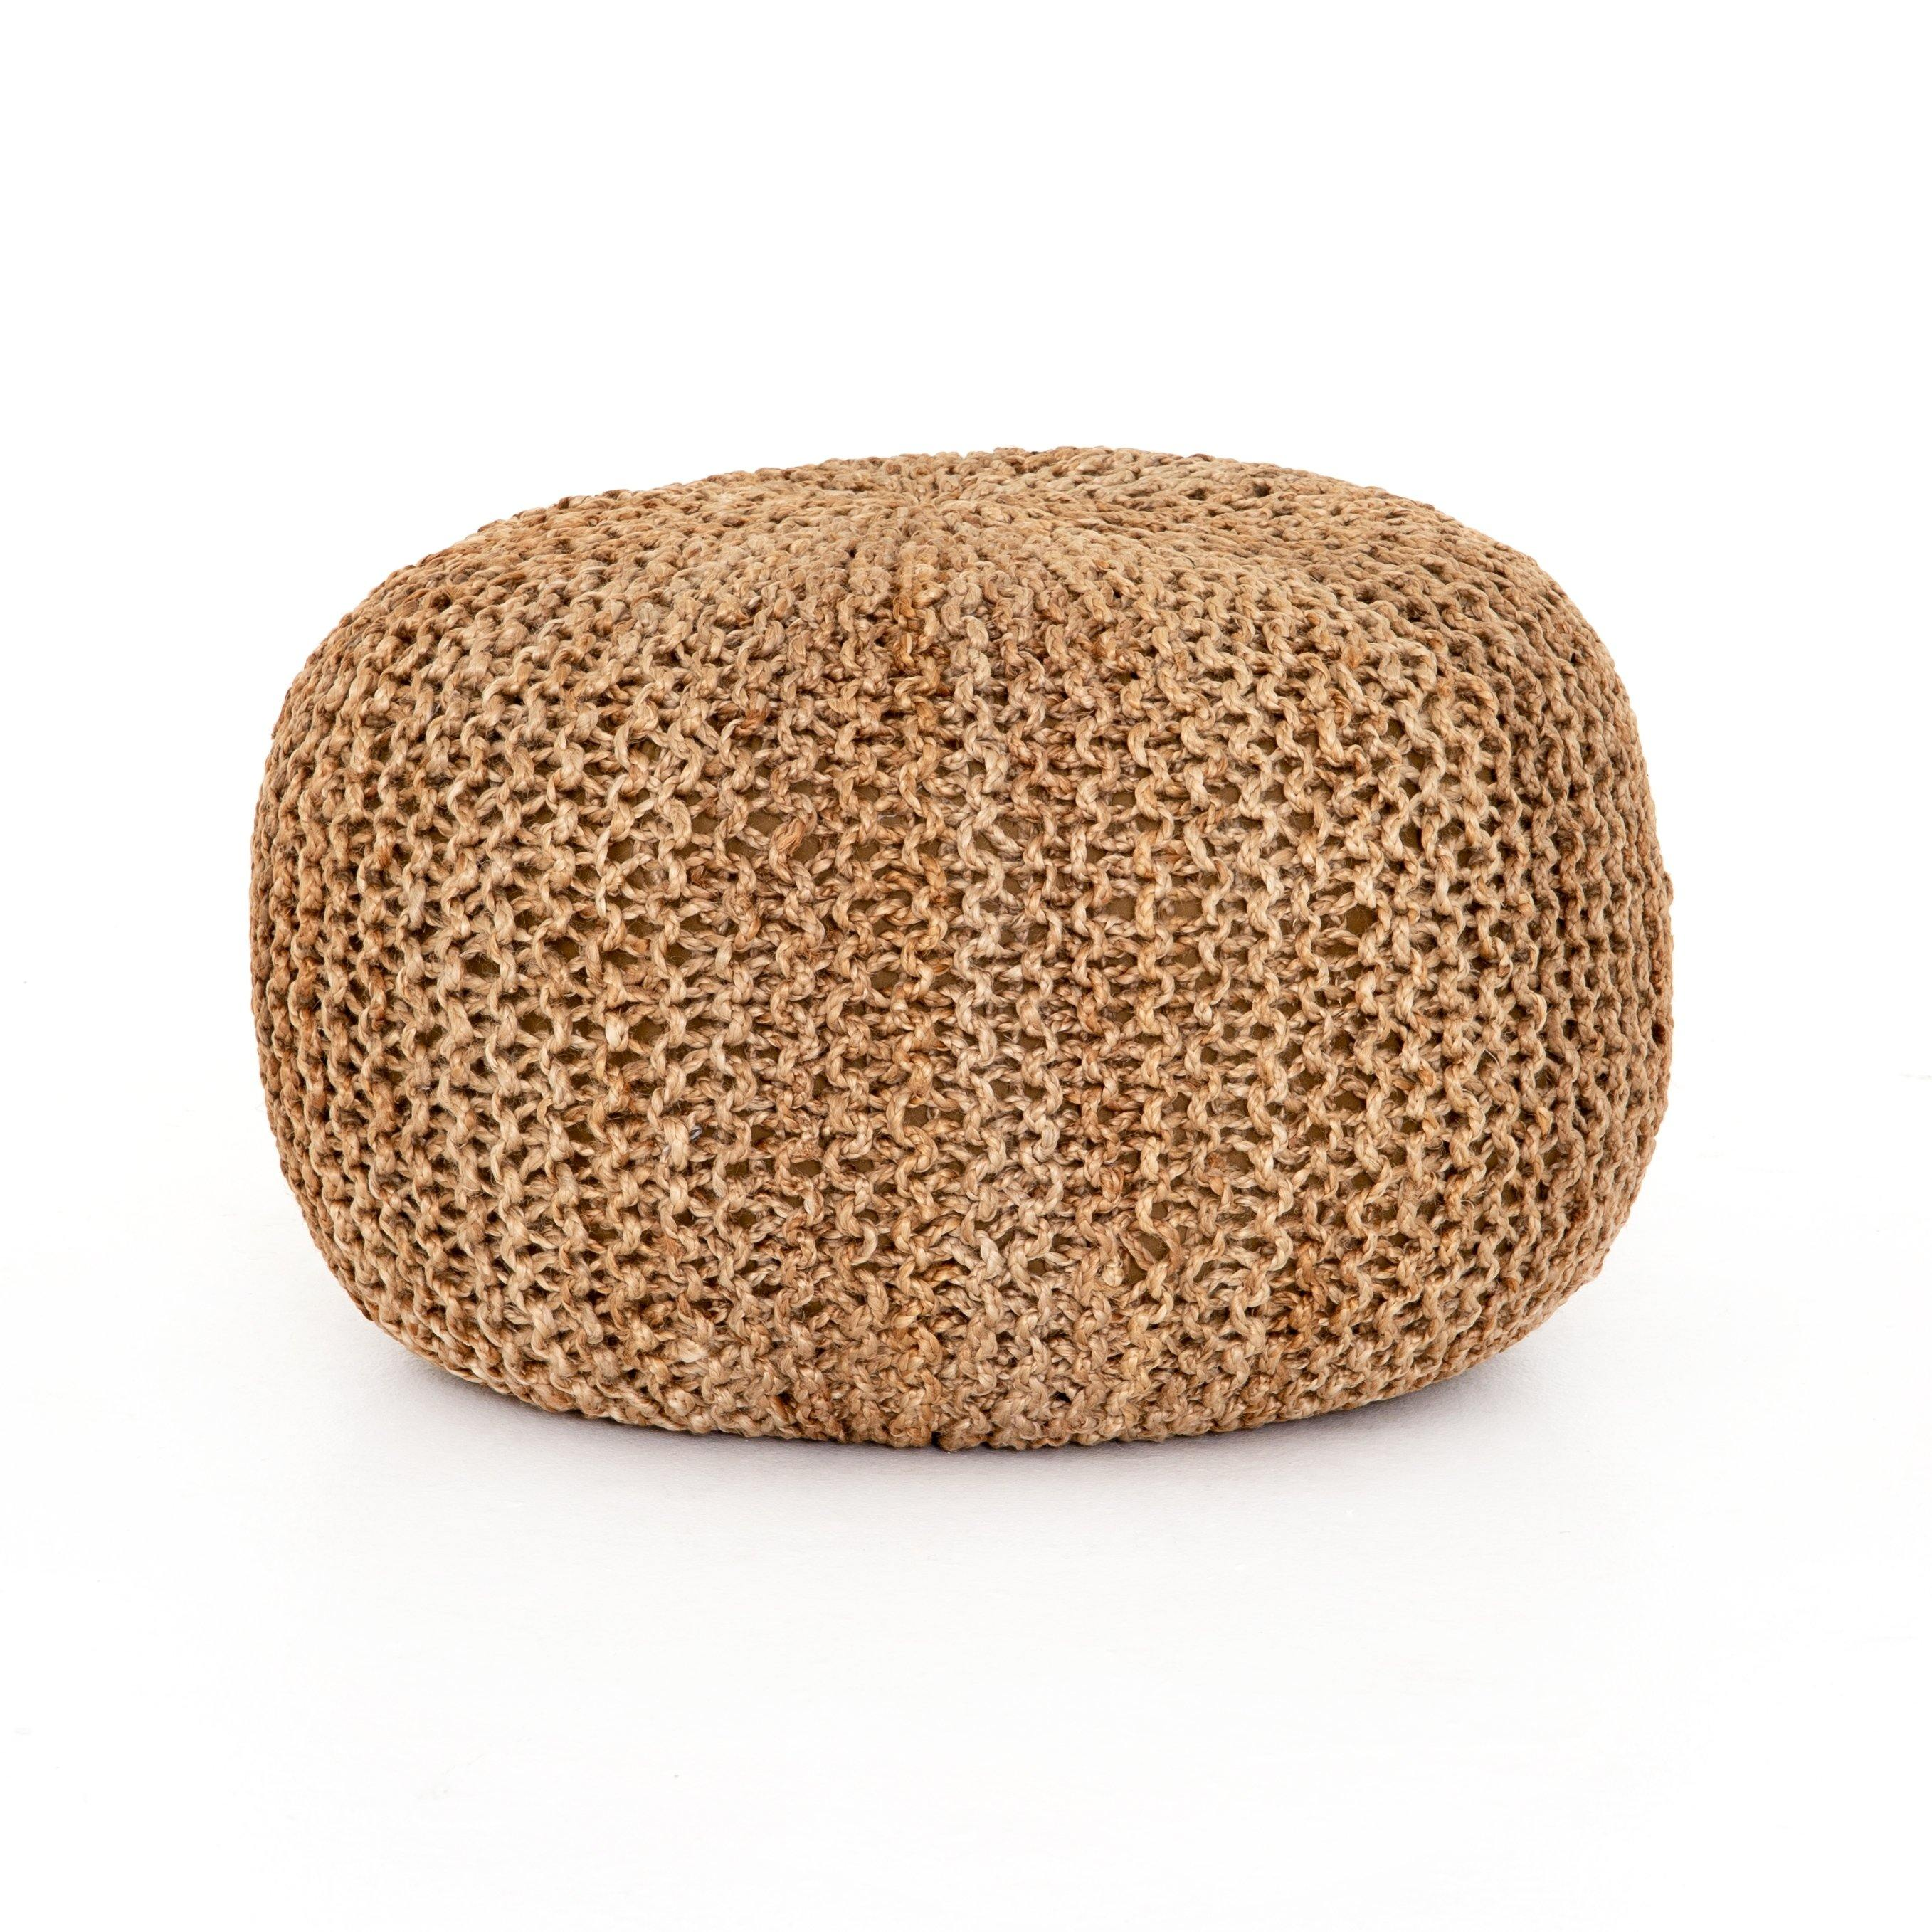 jute-knit-pouf-decor-maker-and-maker and moss